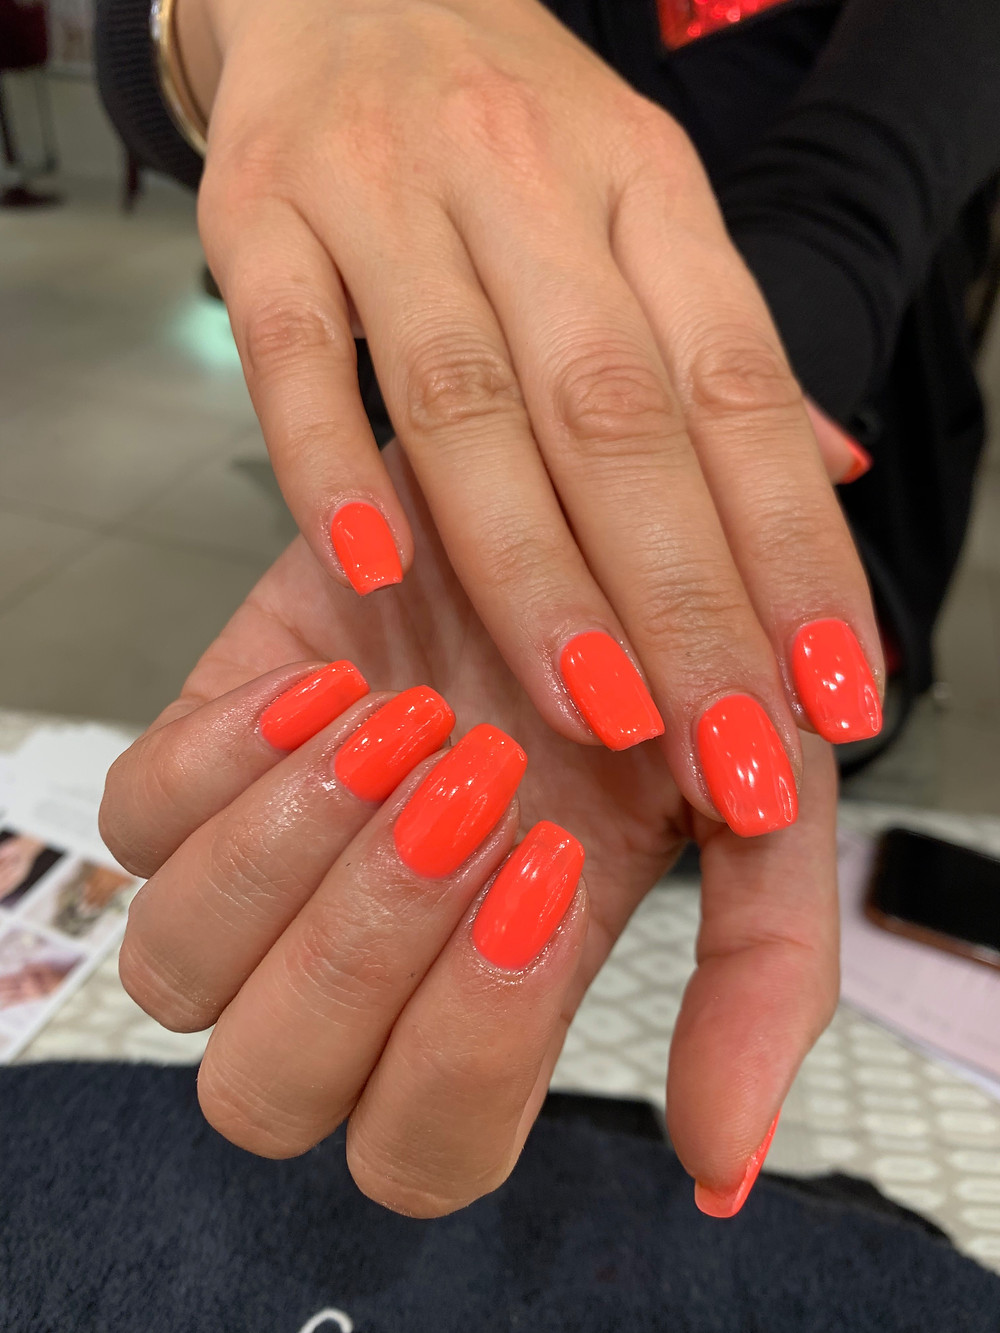 hand model shows neon orange manicure in Gelish i'm brighter than you